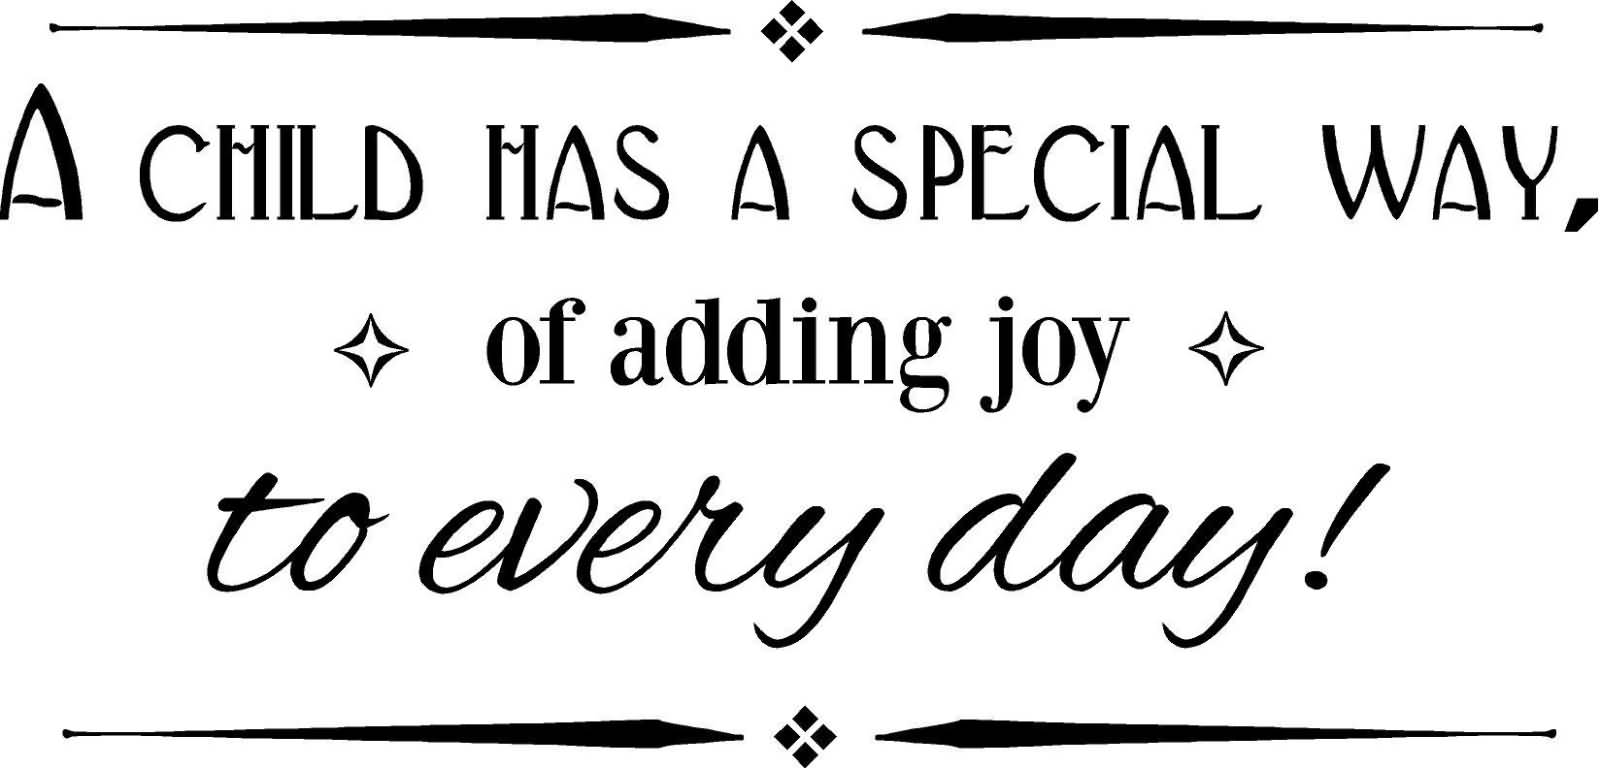 A Child Has A Special Way, Of Adding Joy To Every Day